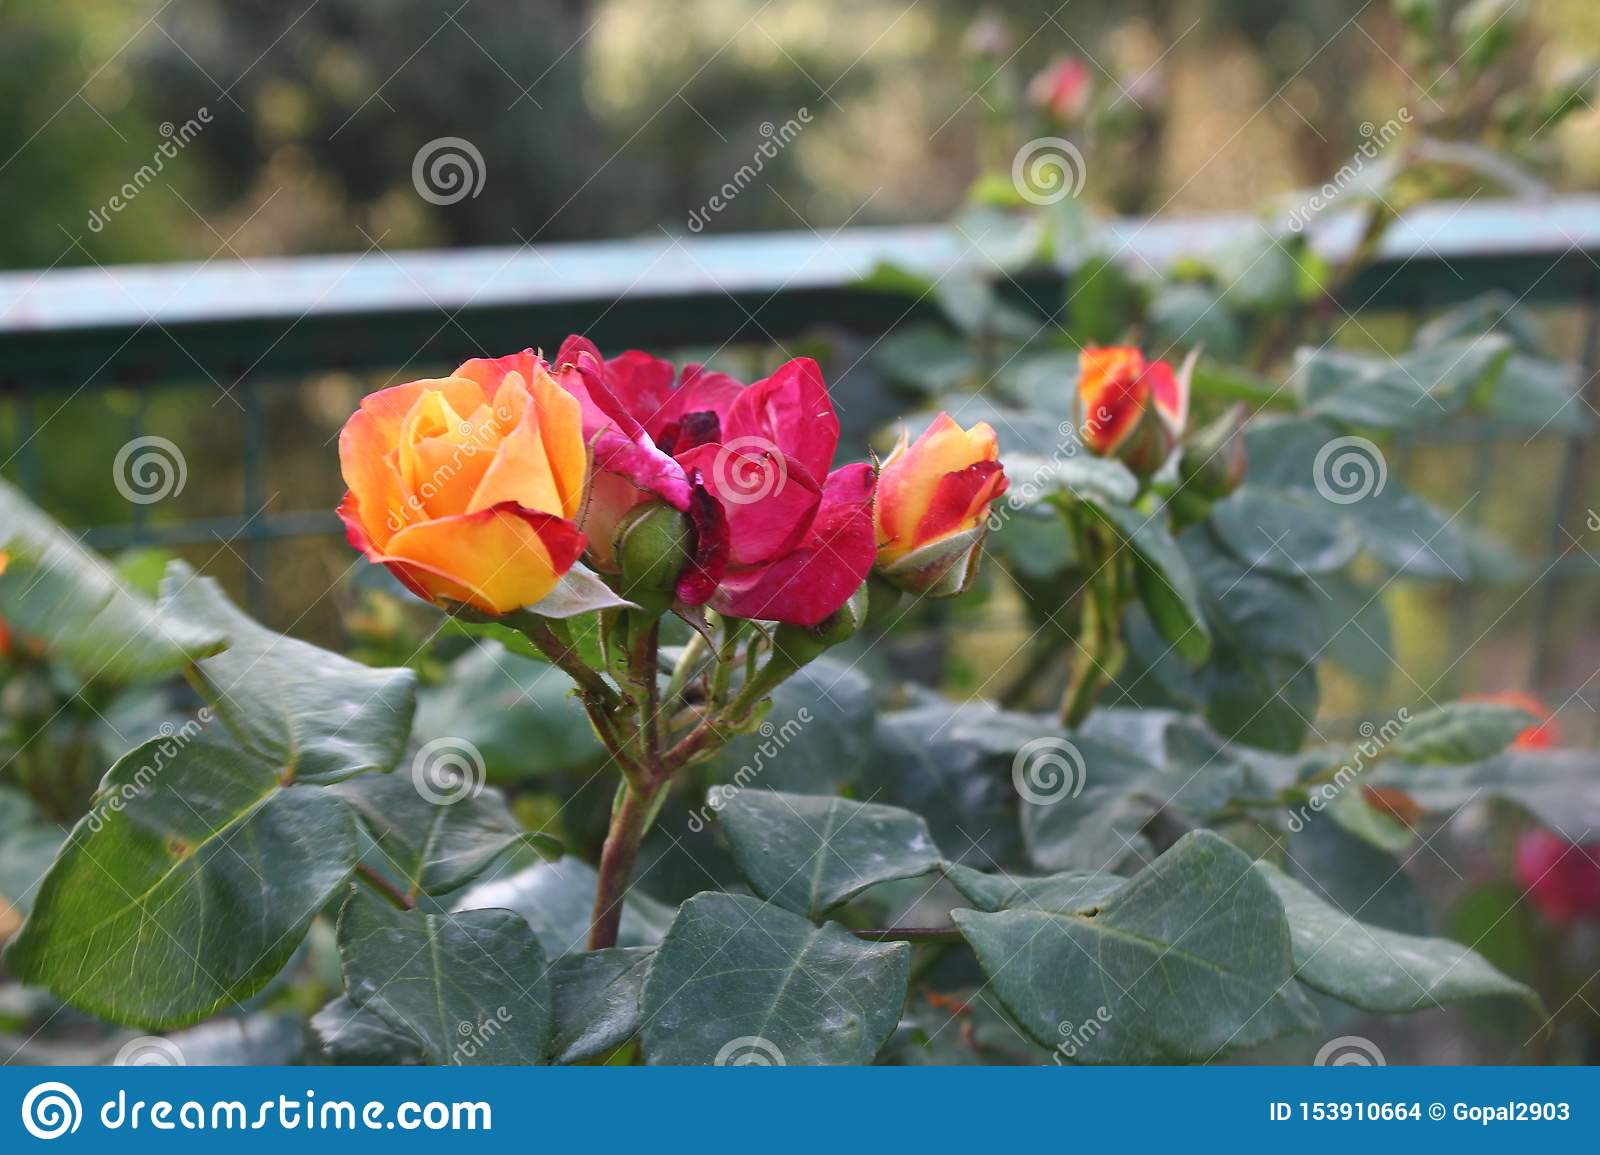 Enchanting colorful flower and bud